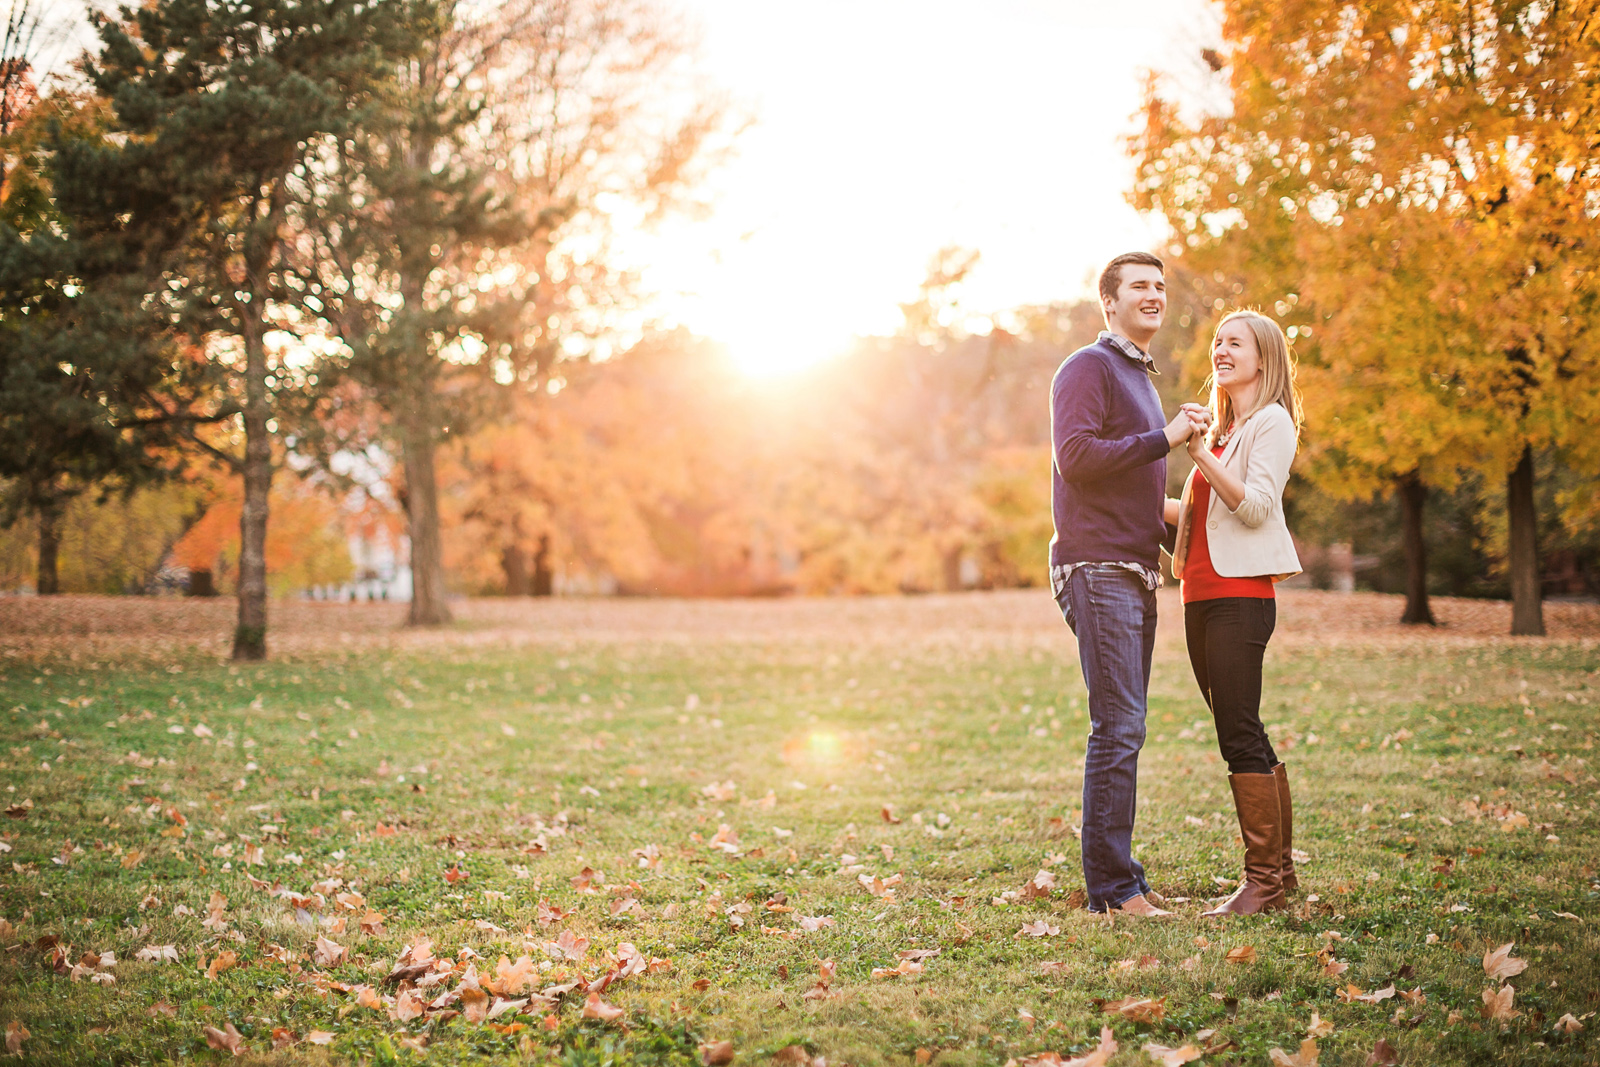 Oldani Photography St Louis Lafayette Square Park Engagement_20141102_171616.jpg